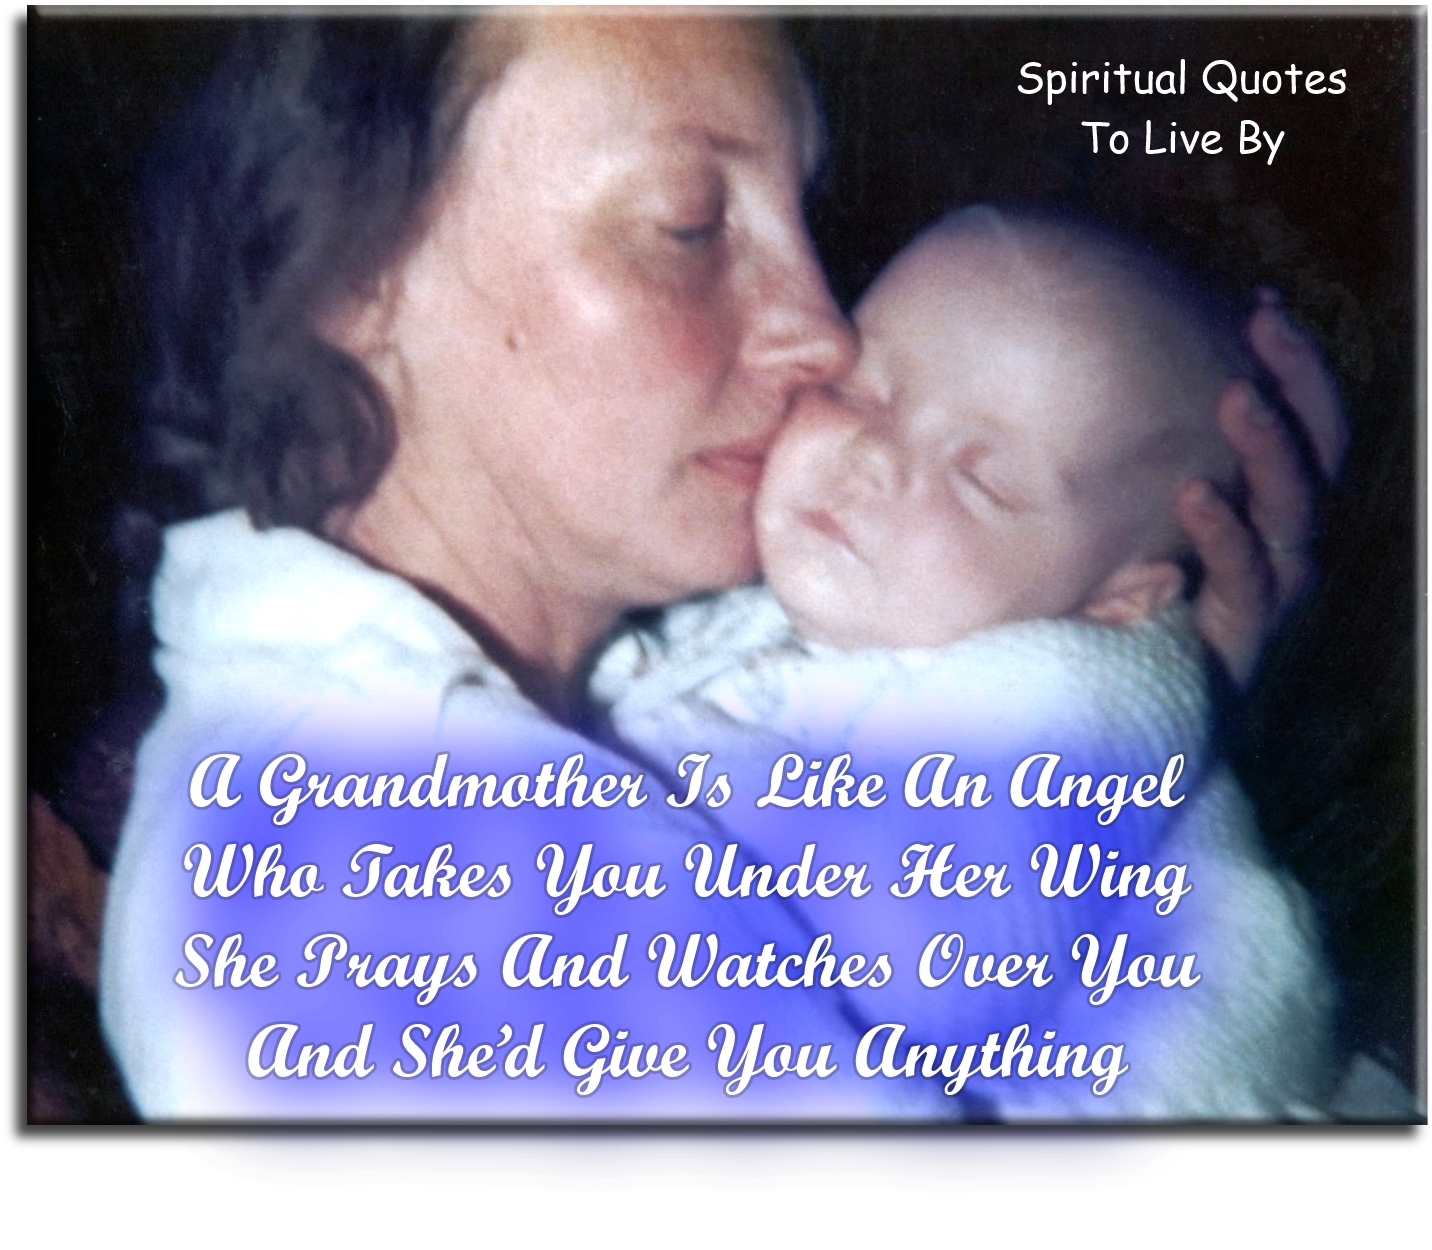 A Grandmother is like an angel, who takes you under her wing, she prays and watches over you, and she'd give you anything - Spiritual Quotes To Live By